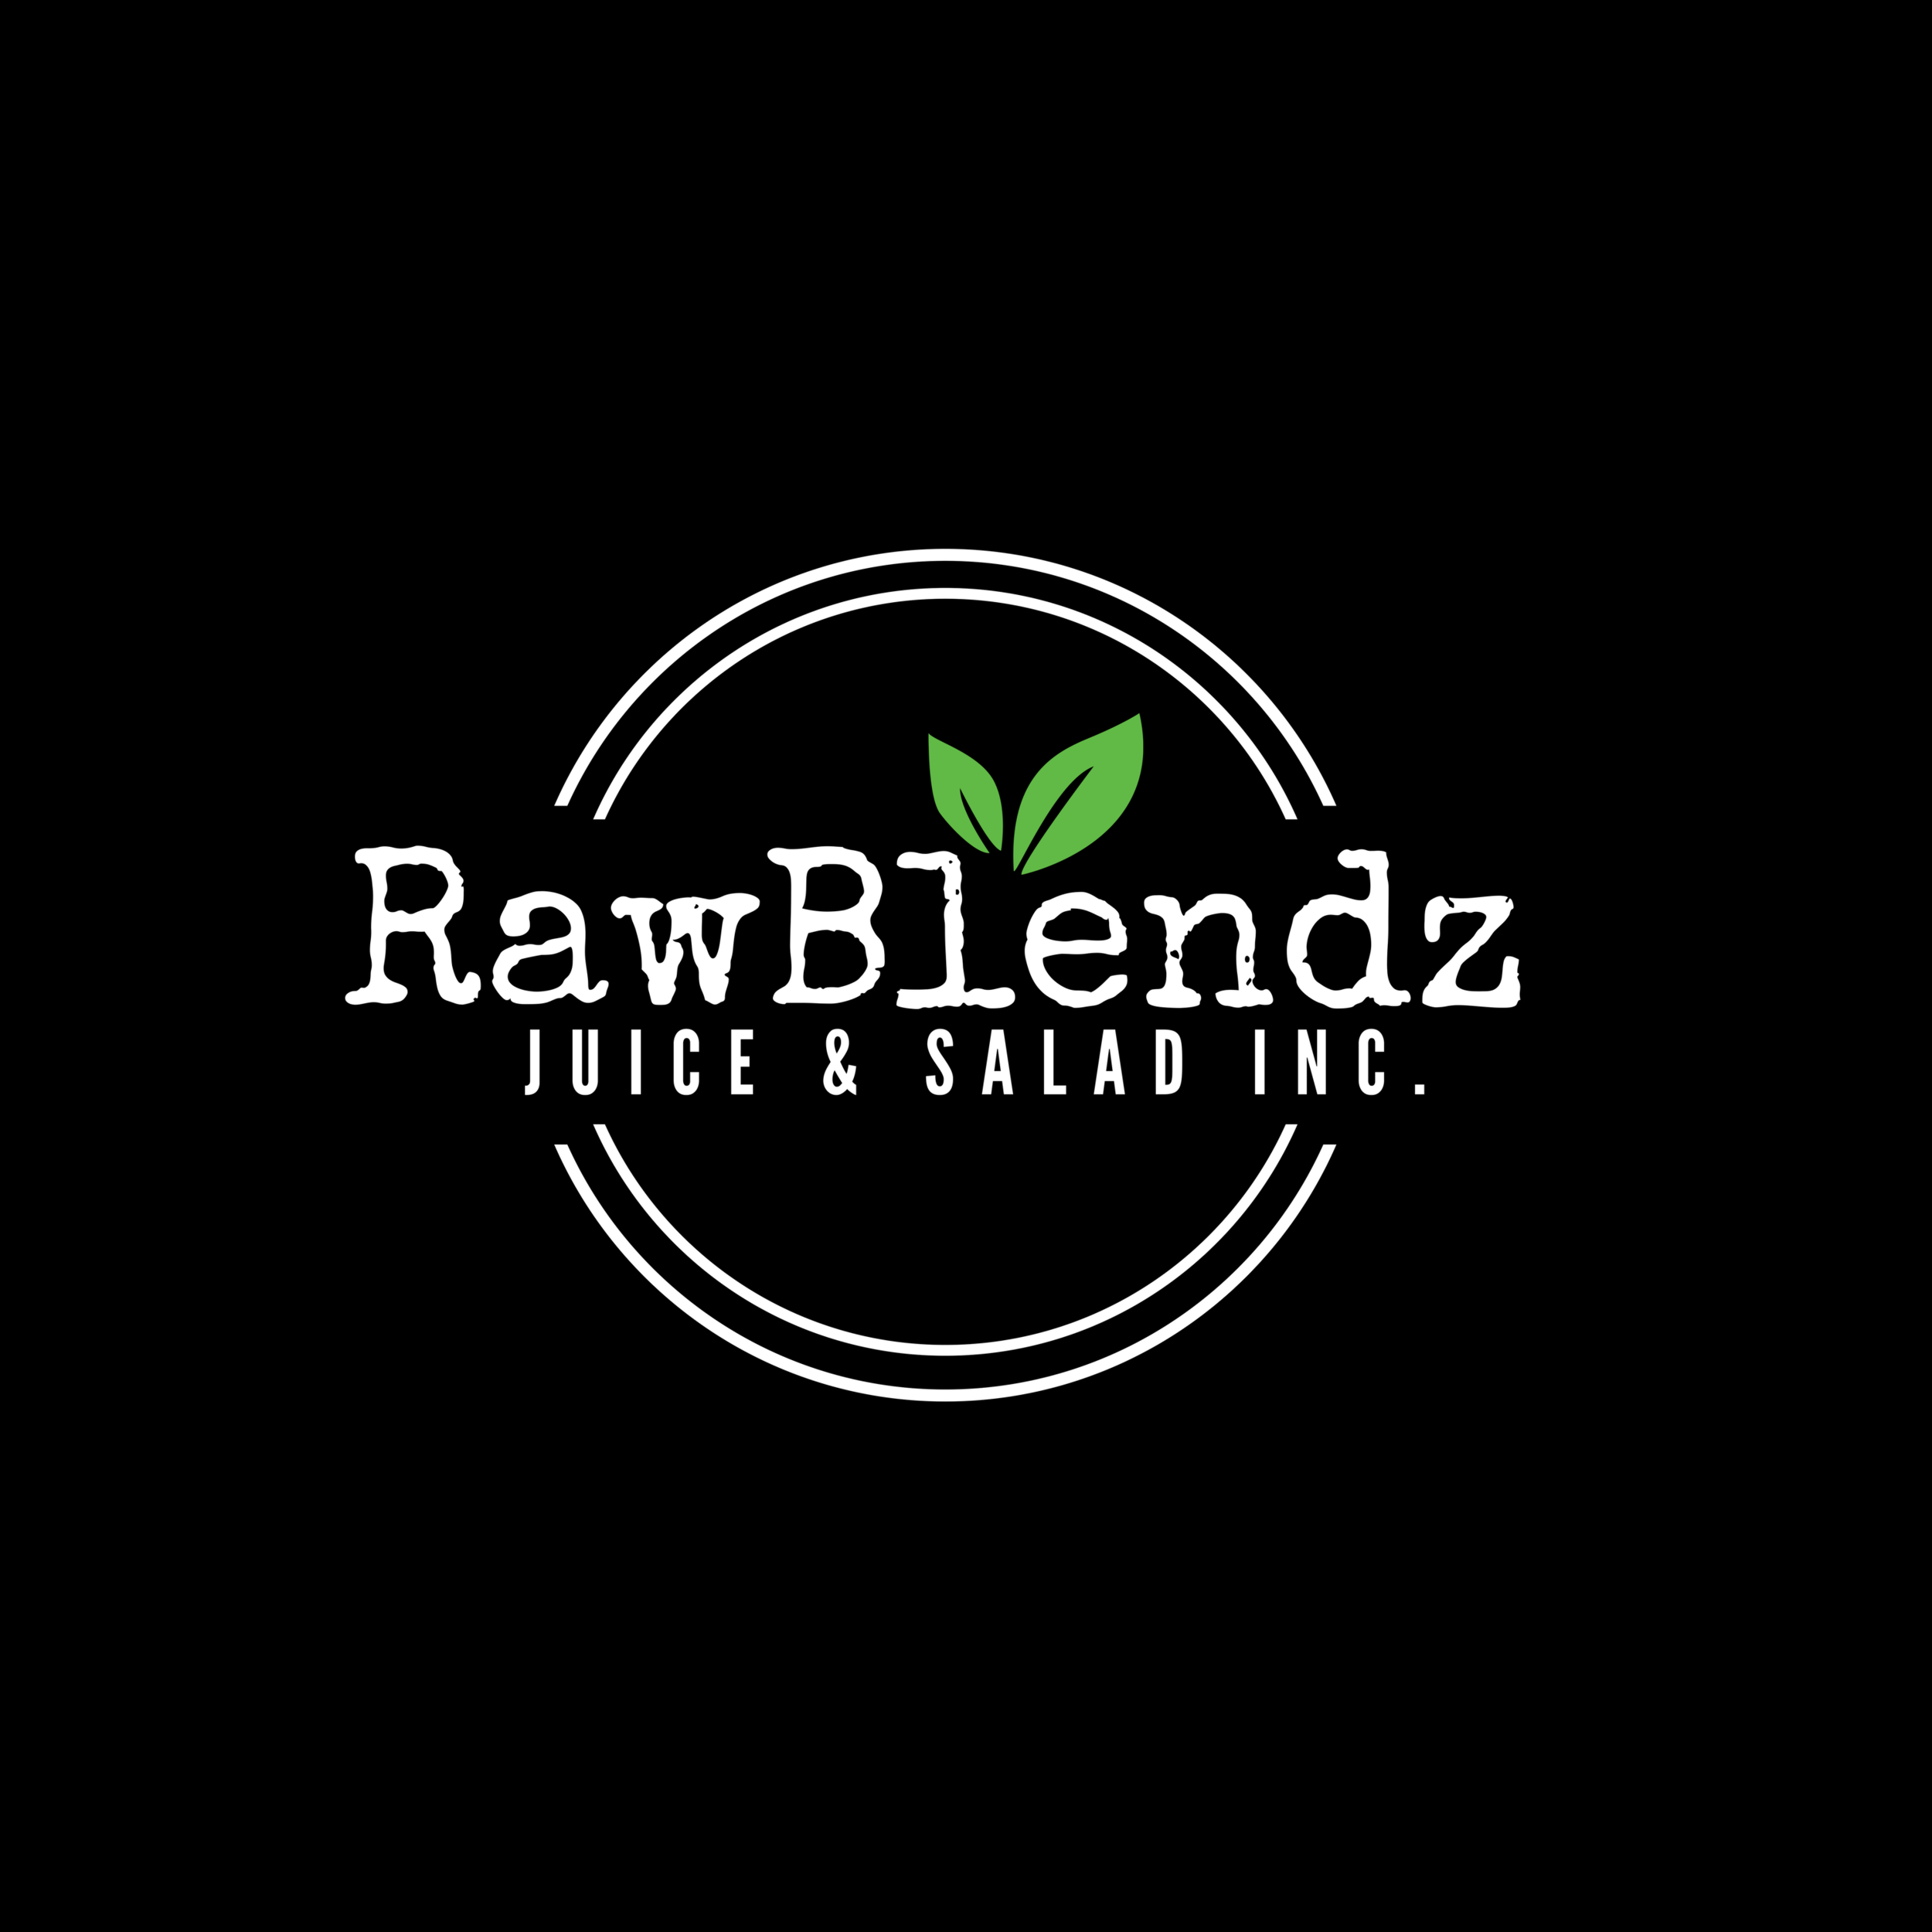 Raw Blendz.png